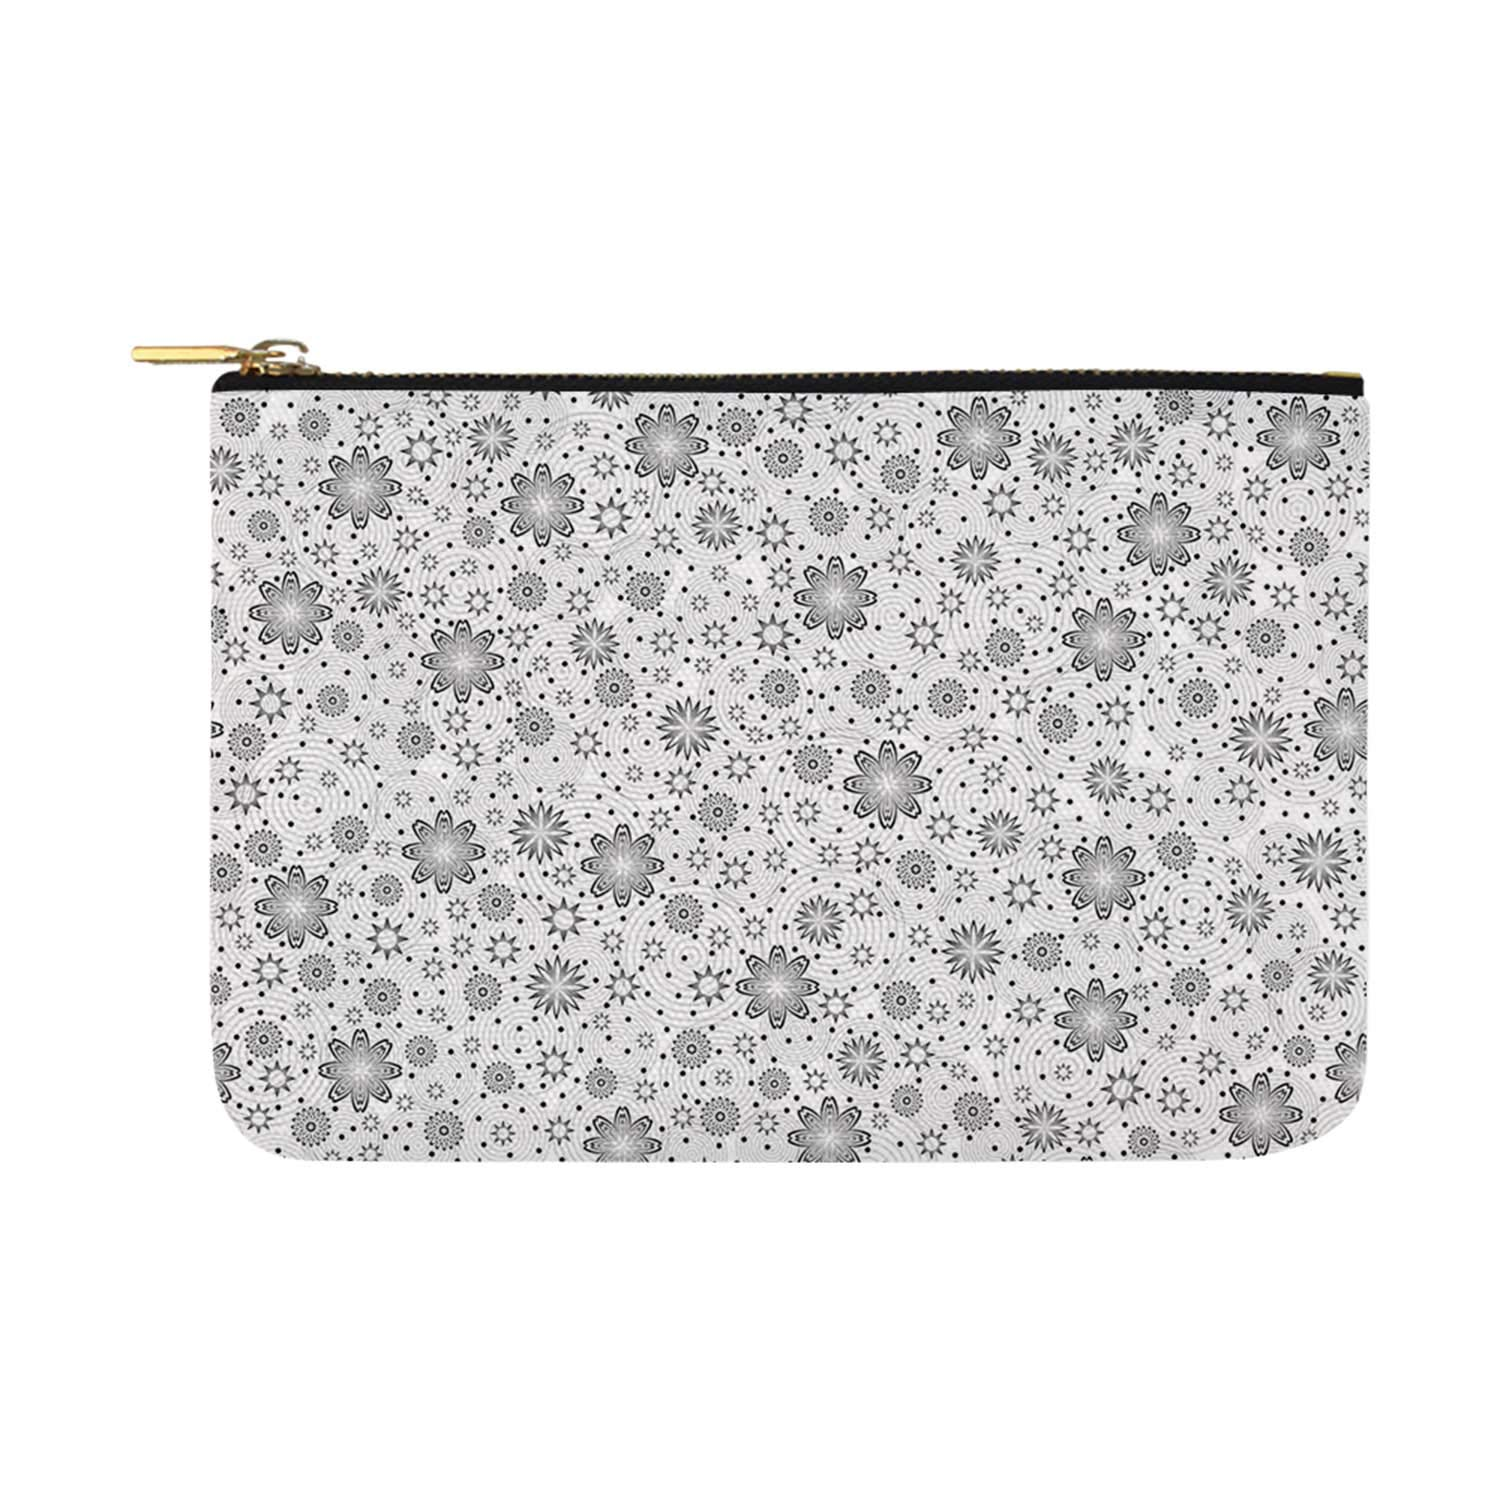 Watercolor Flower Fashion womens canvas coin purse,For shopping